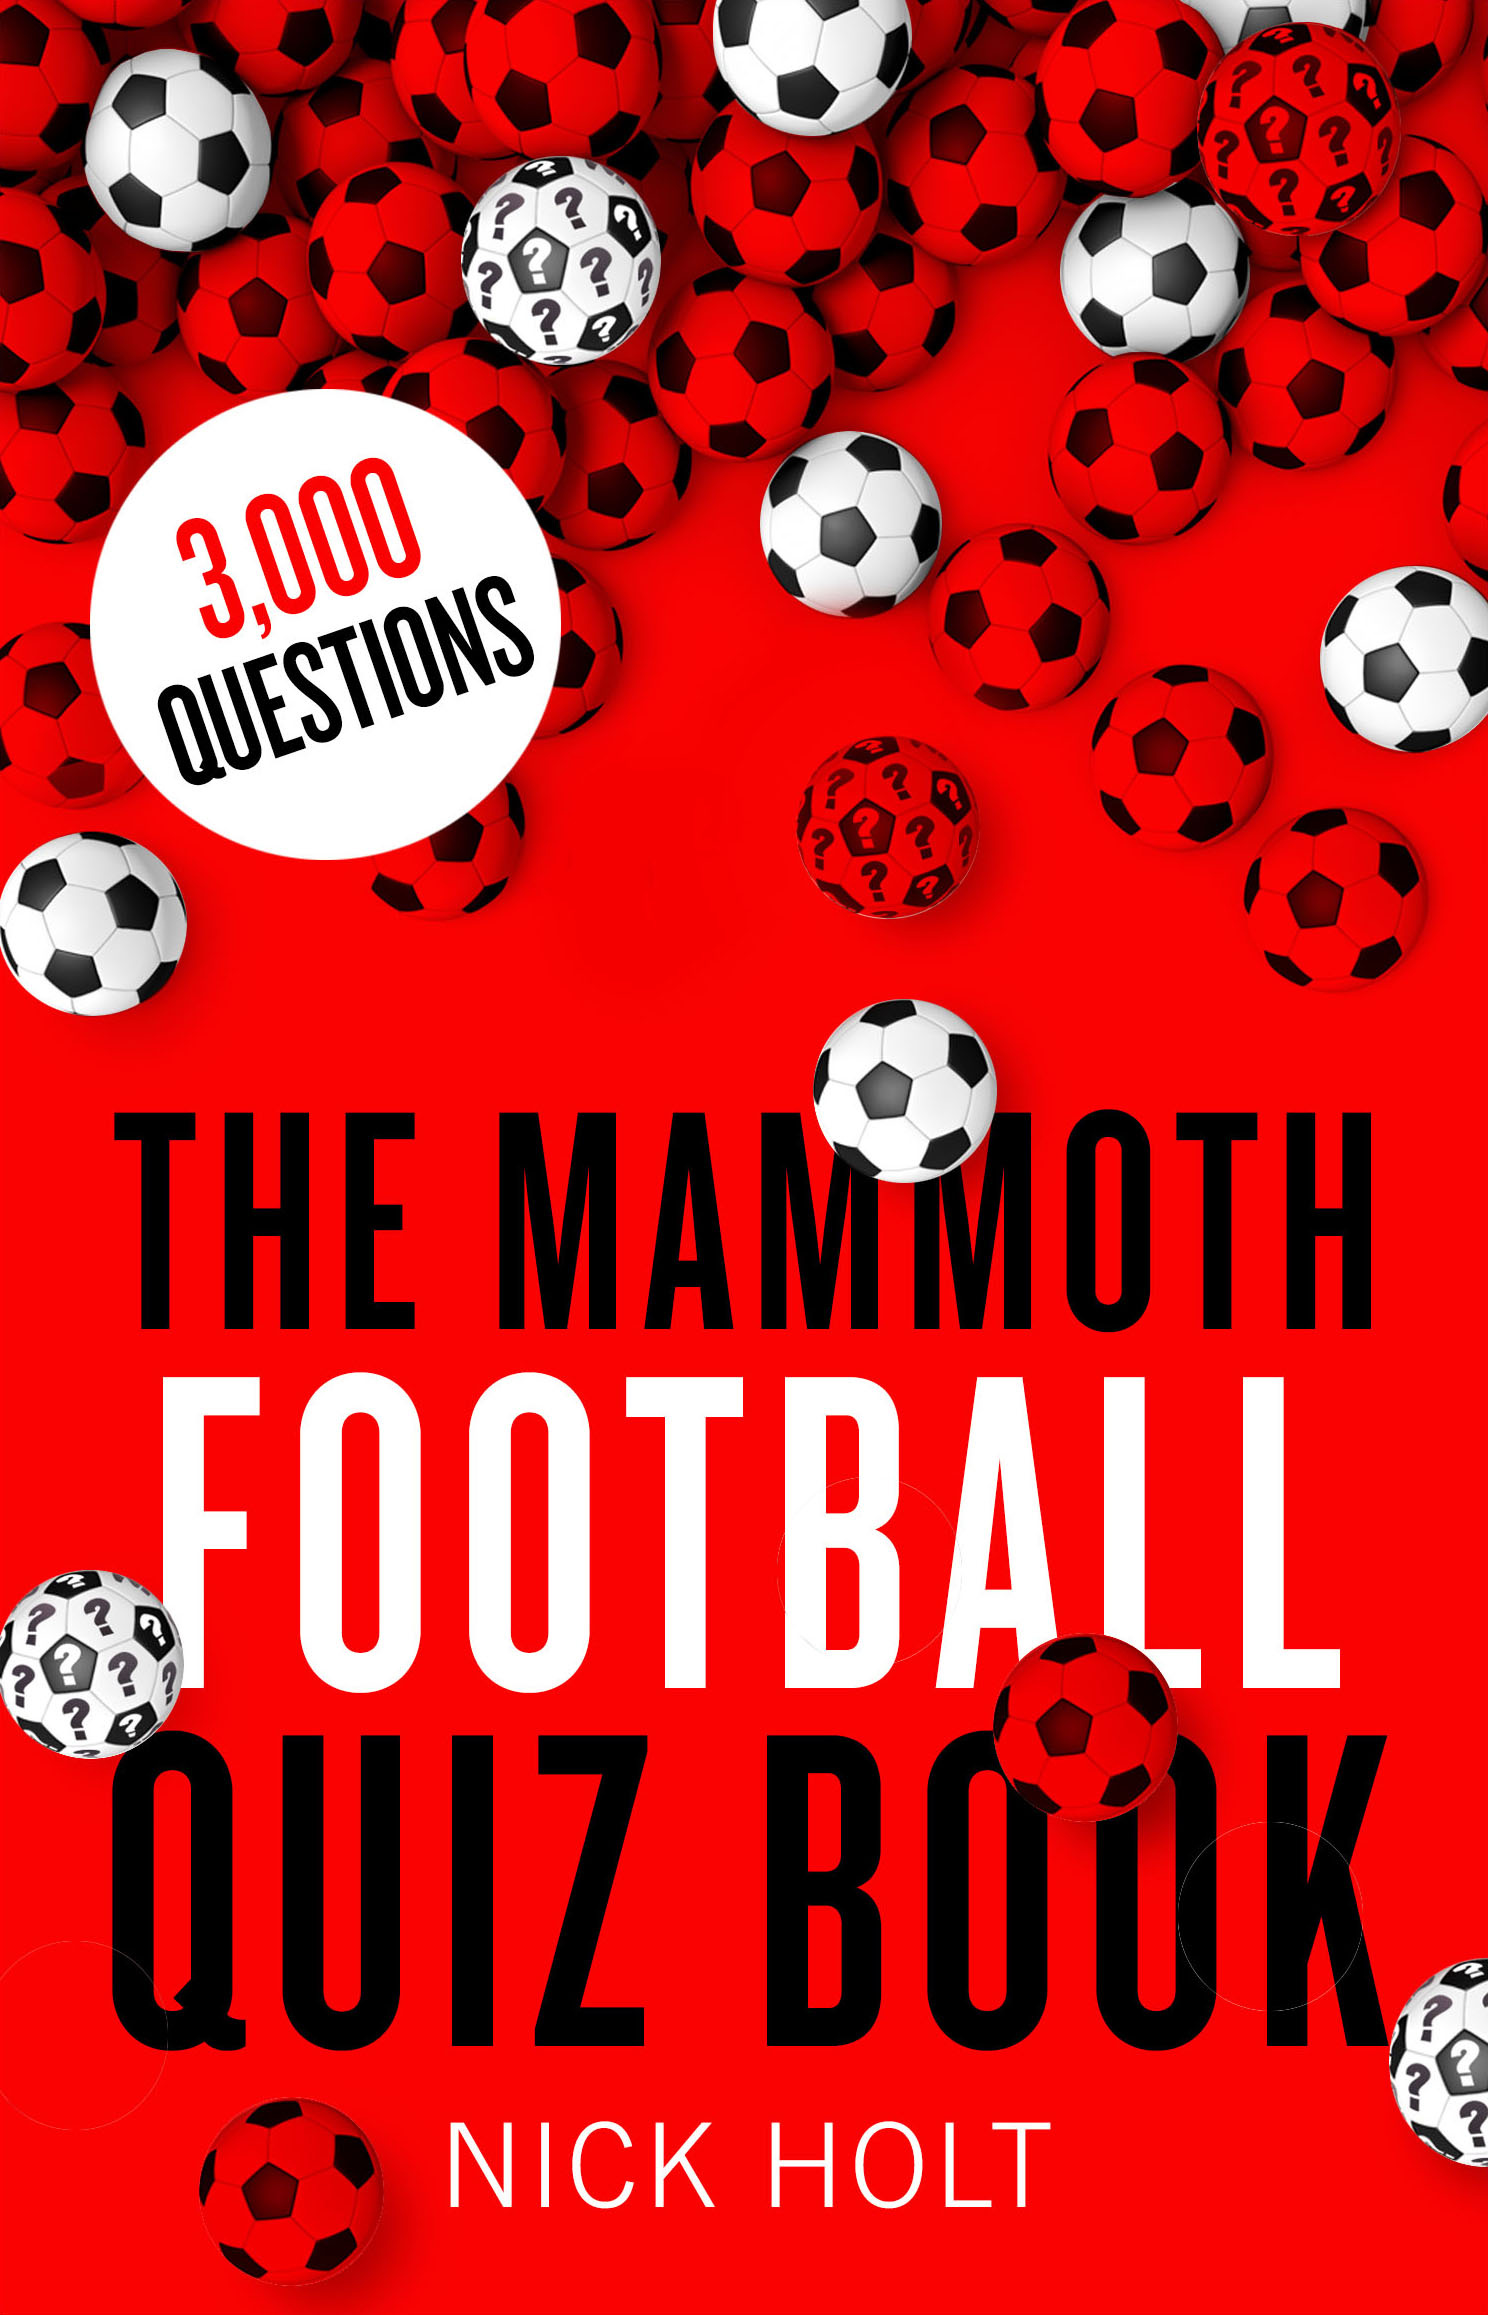 The Mammoth Football Quiz Book By Nick Holt Books Hachette Australia